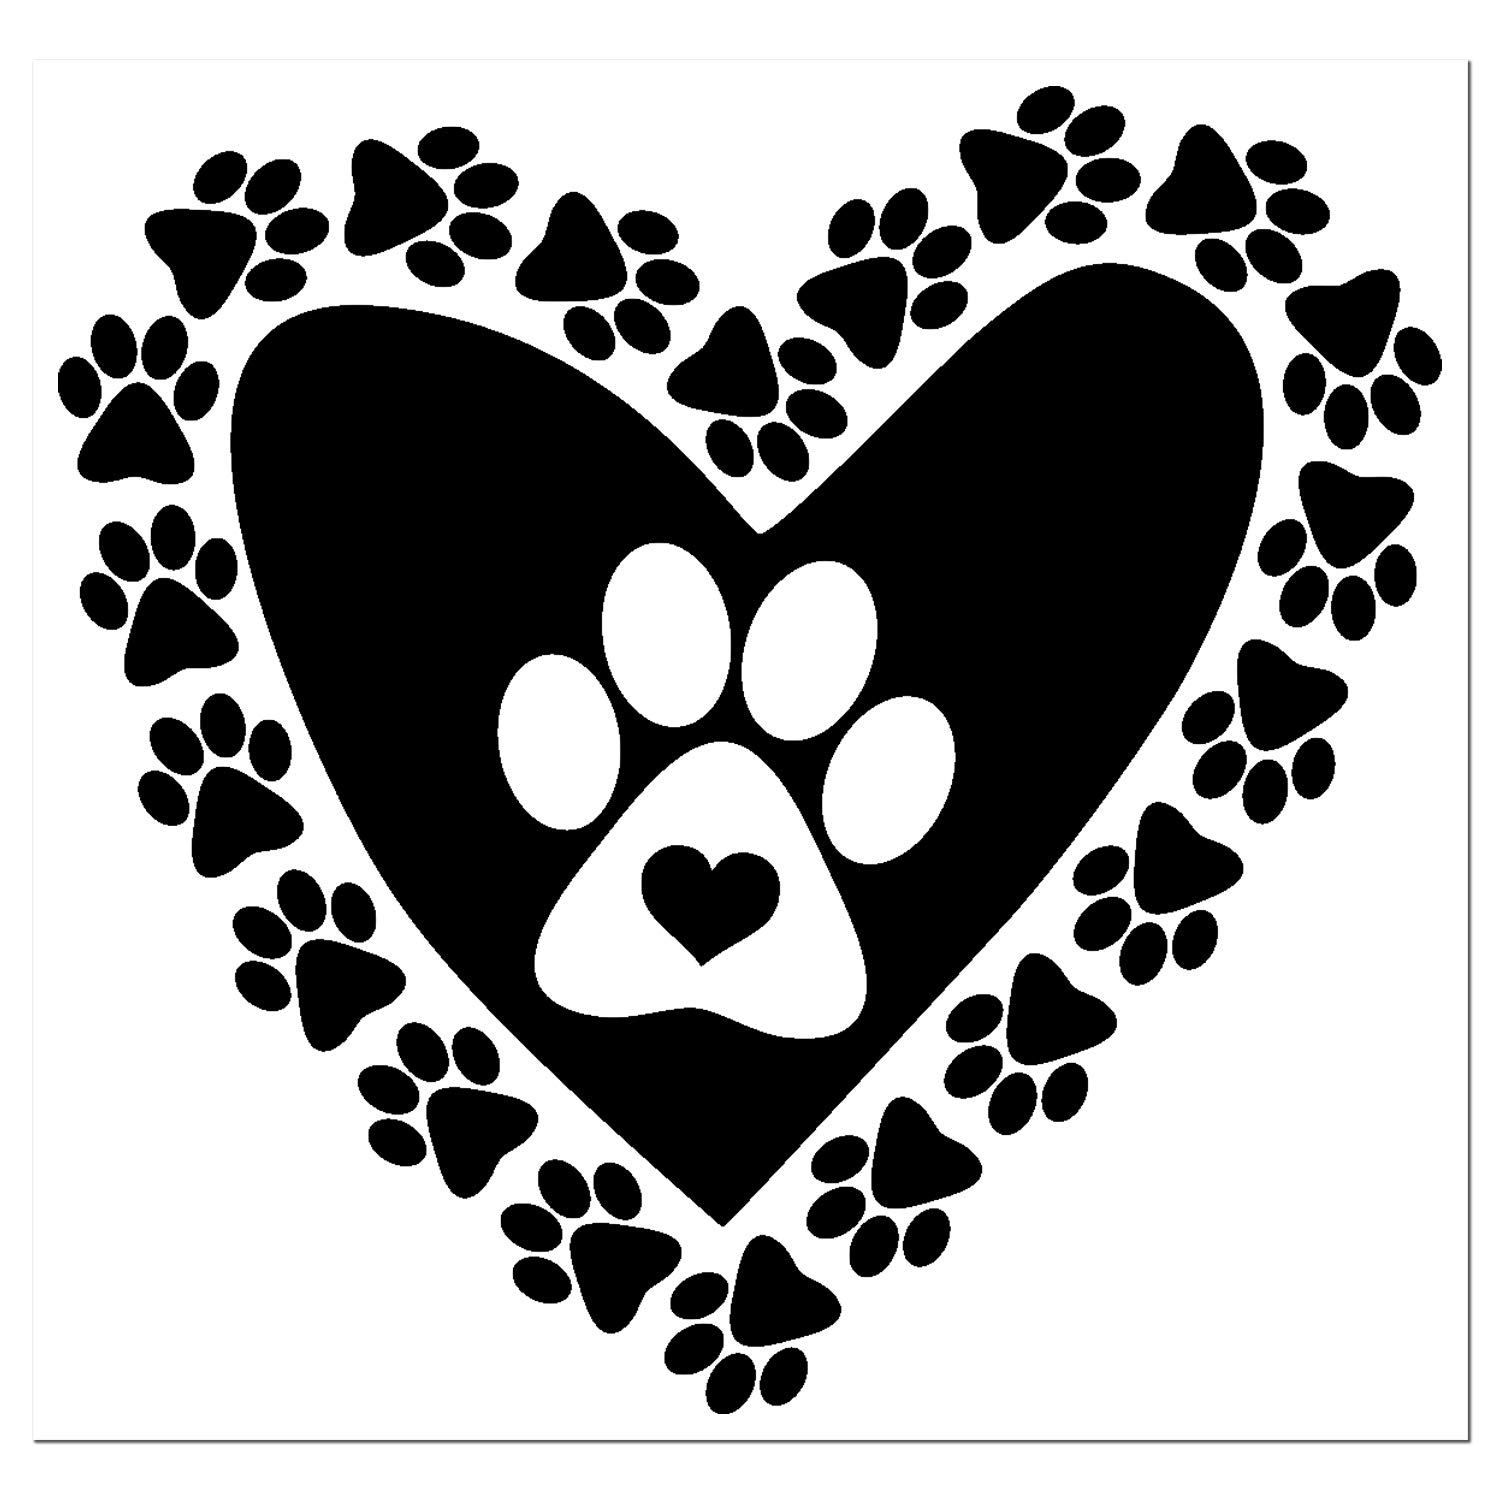 Amazon.com: Dog Paws Heart Shaped With Solid Heart With Paw Decal - Pet Dog  Footprint Heart Custom Vinyl Sticker Heart Paw - Dog Lover Decal - Many  Colors and Sizes to Choose